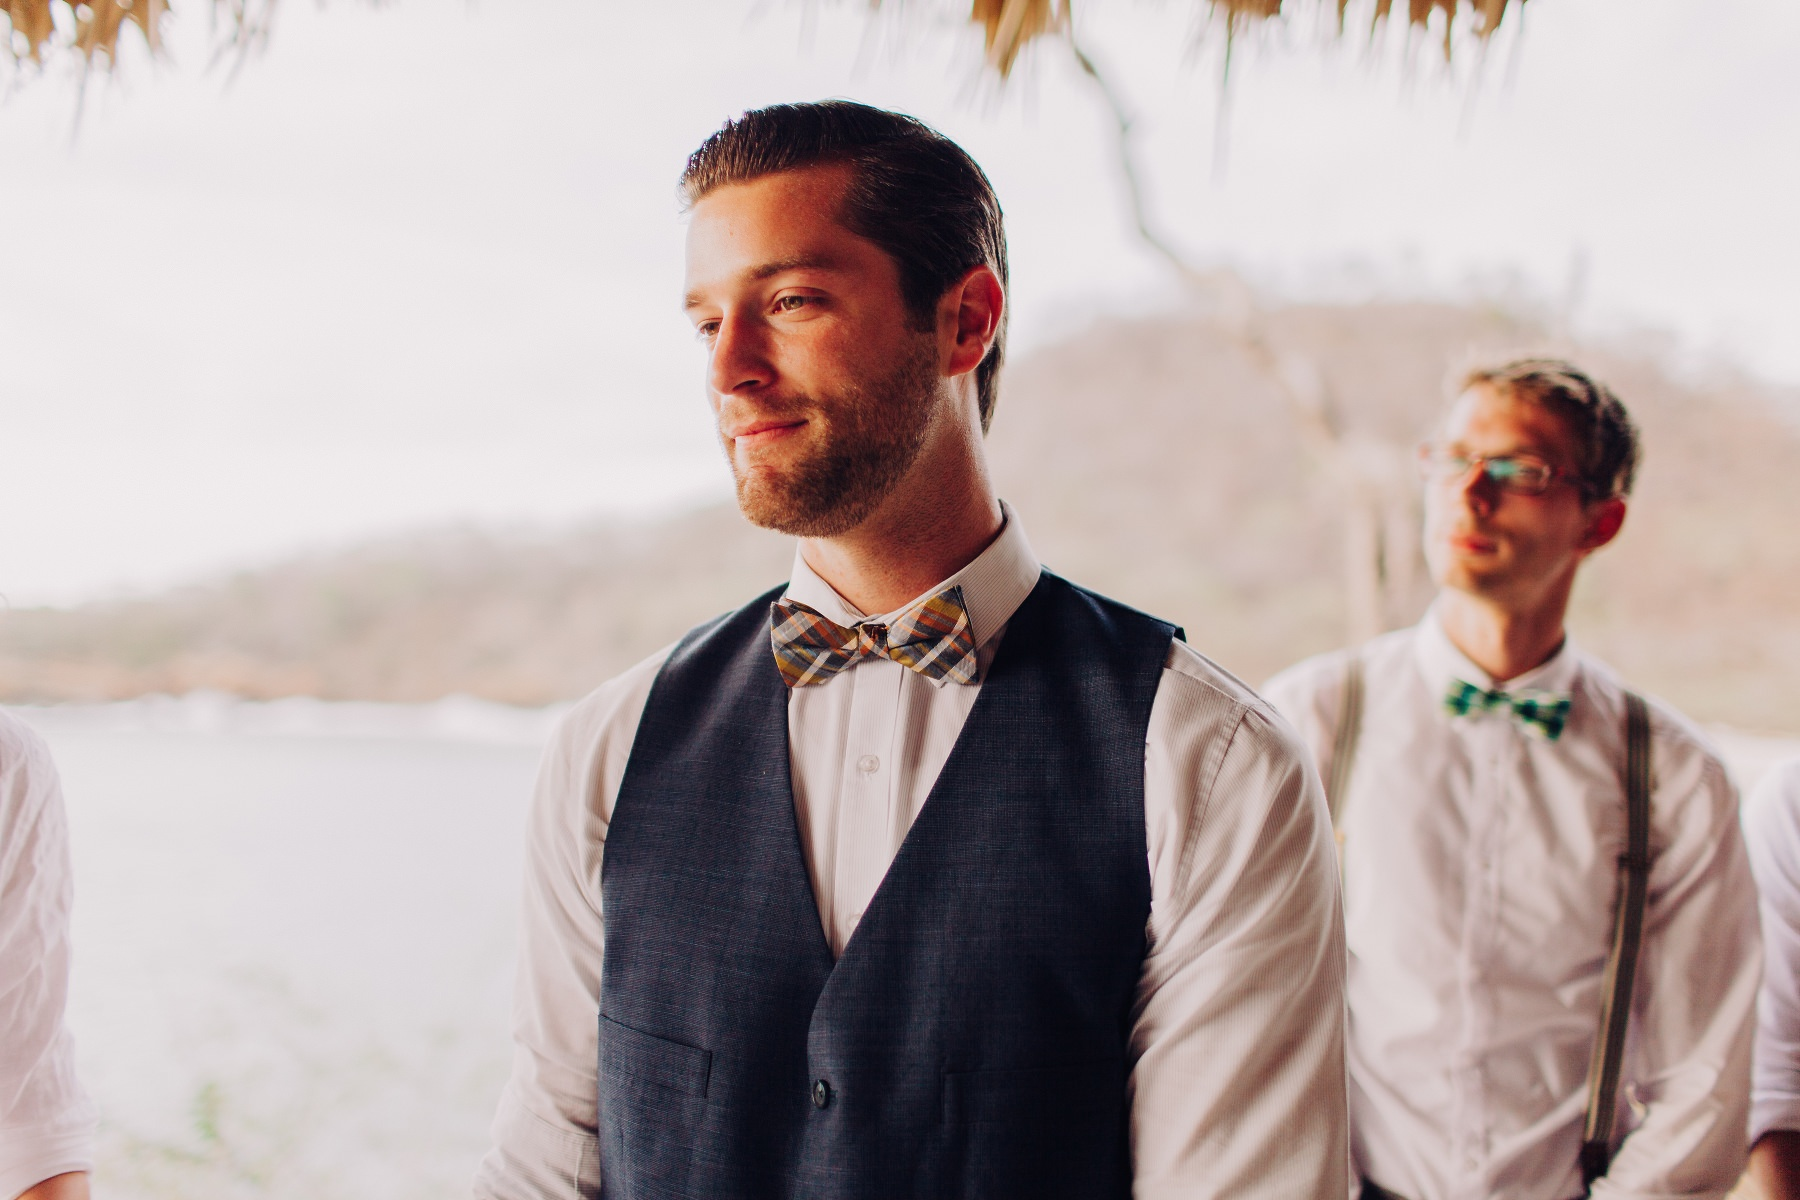 groom style ideas Destination Beach wedding in Costa Rica